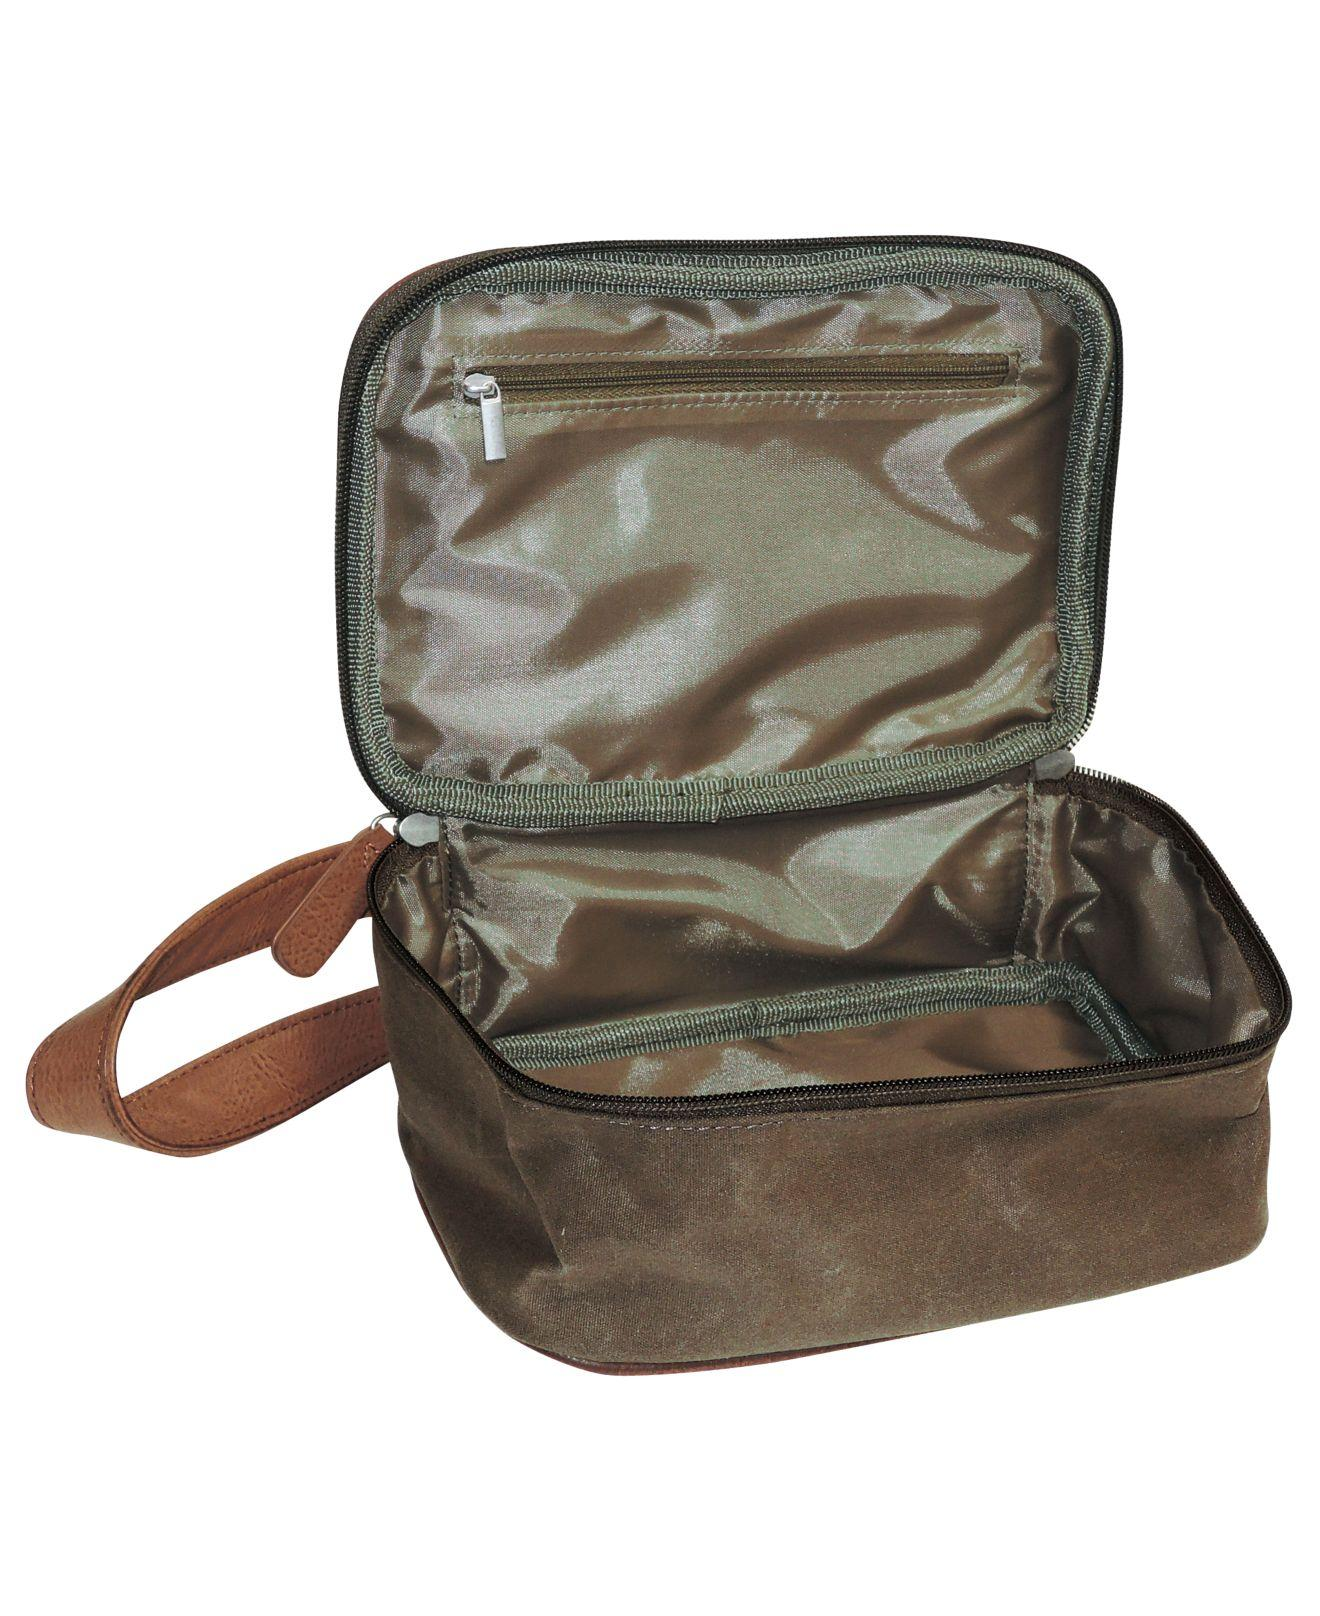 84e41a5889 Lyst - Buxton Expedition Ii Huntington Gear Top Zip Travel Kit for Men